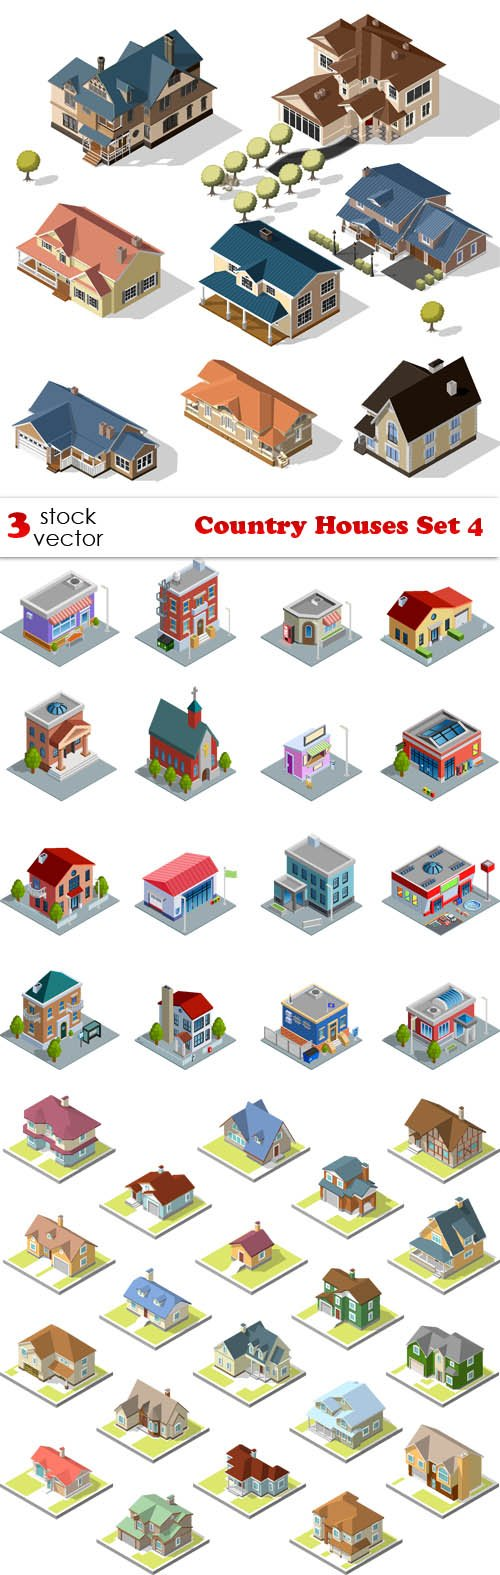 Vectors - Country Houses Set 4